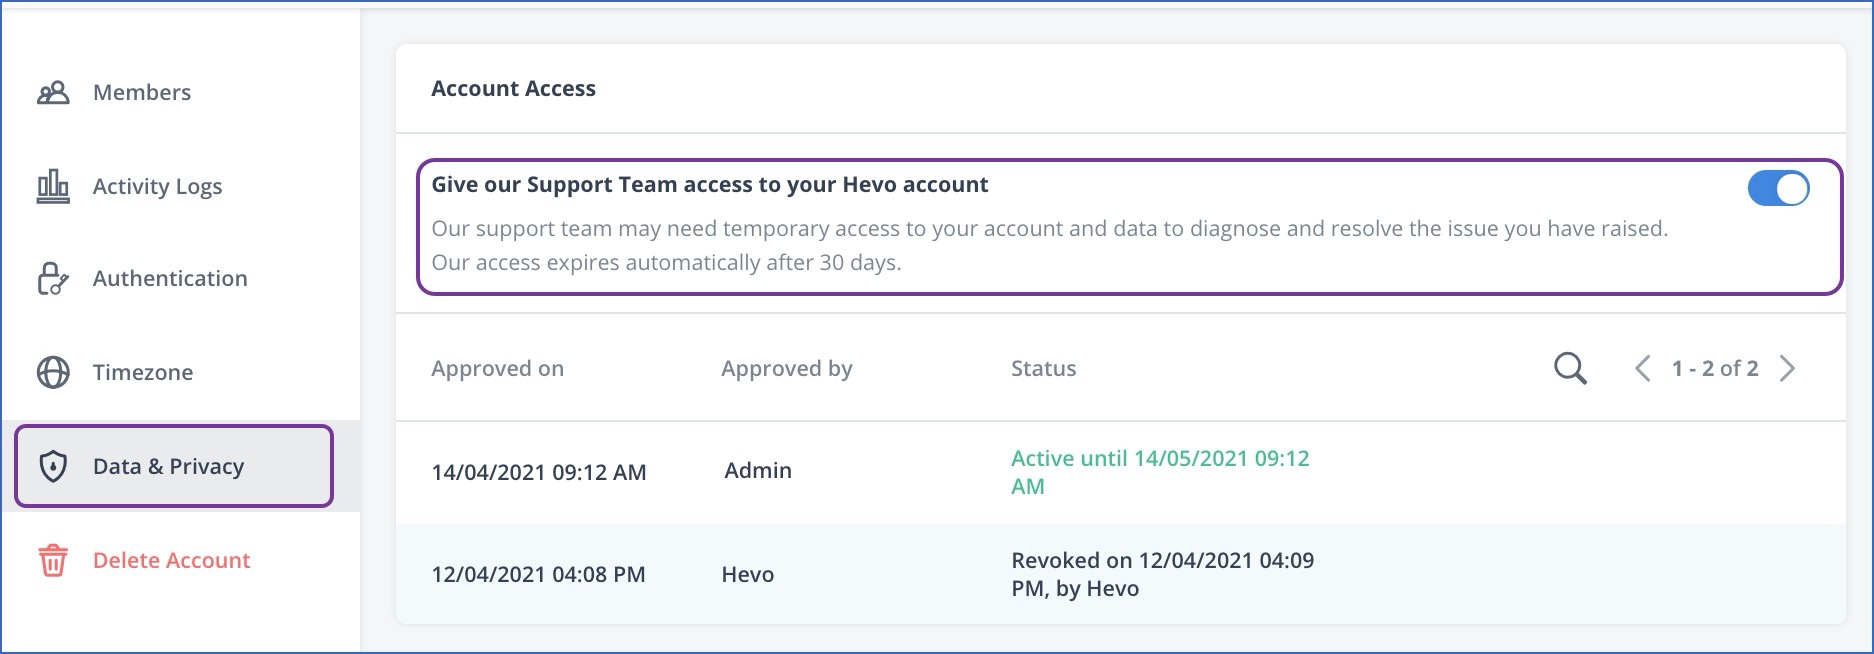 Enable account access for Hevo